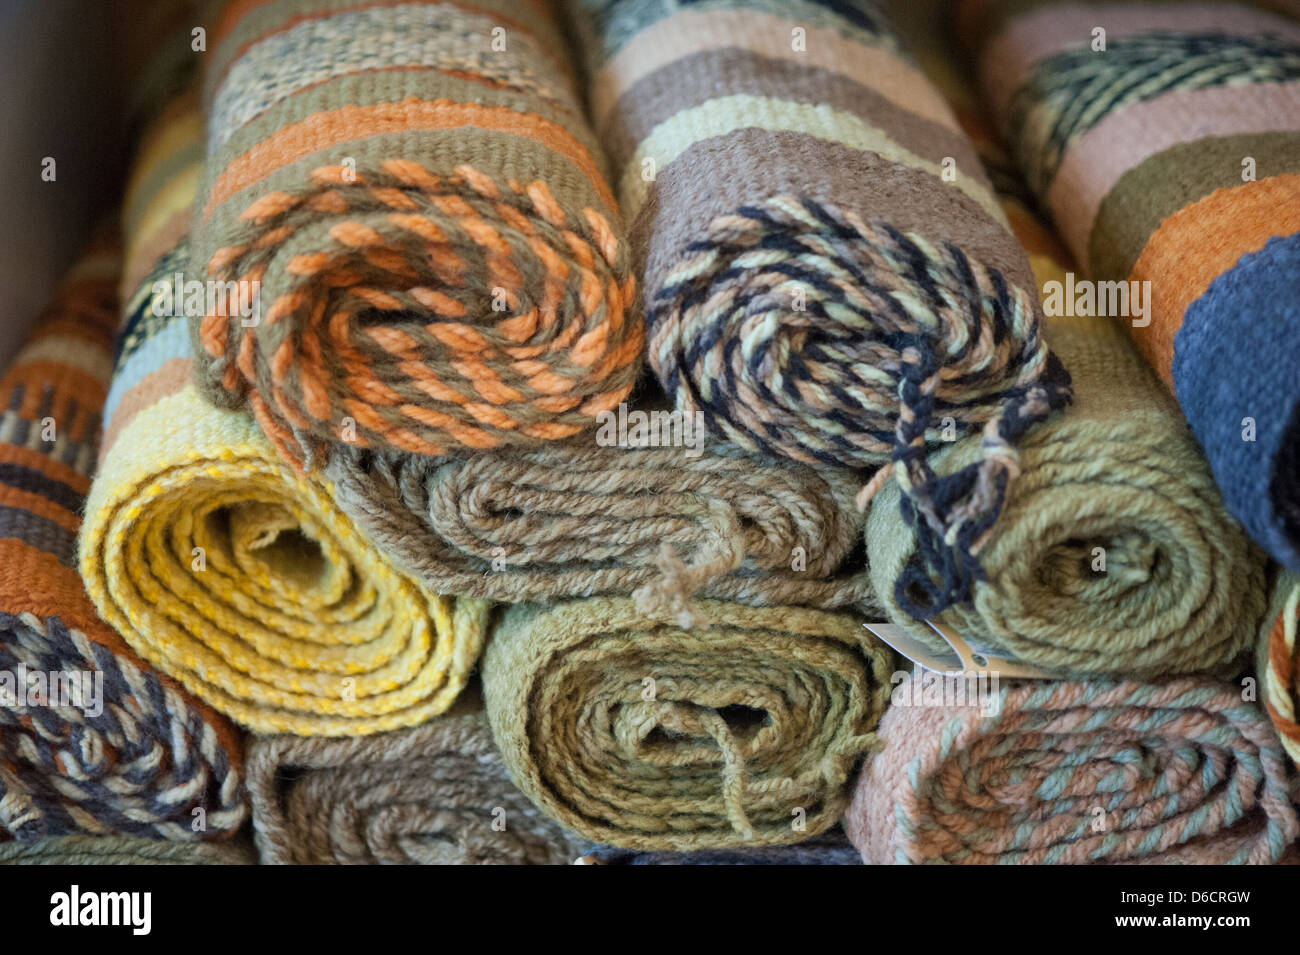 Weavings and textiles made entirely by hand by Mapuche women in Temuco Chile - Stock Image